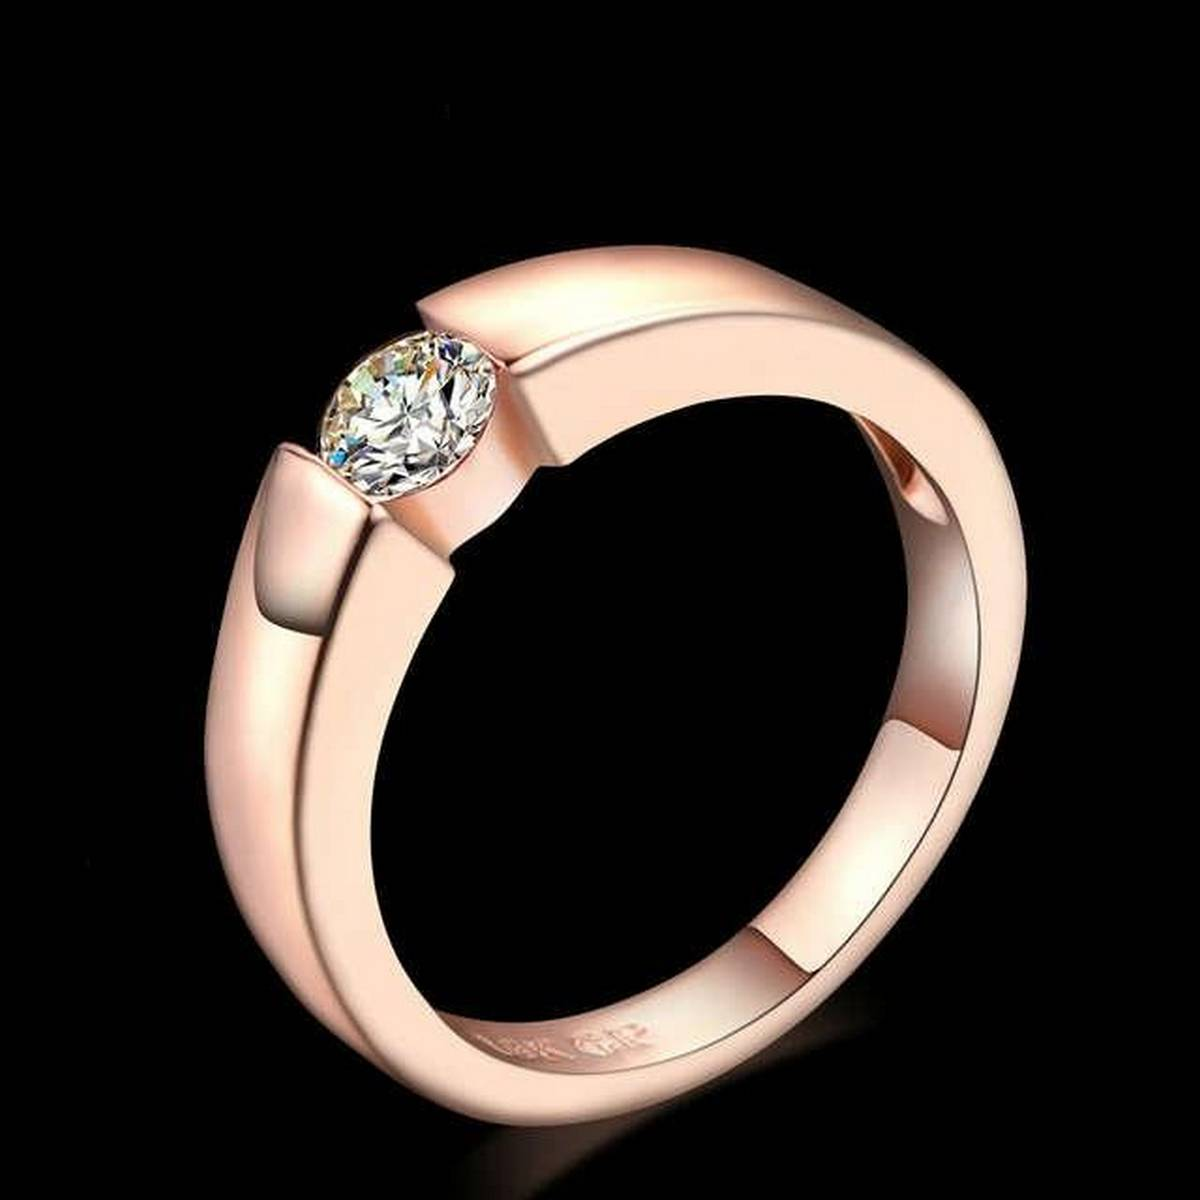 World Wide Princess Cut Stone Engagement/Wedding Rings For Women